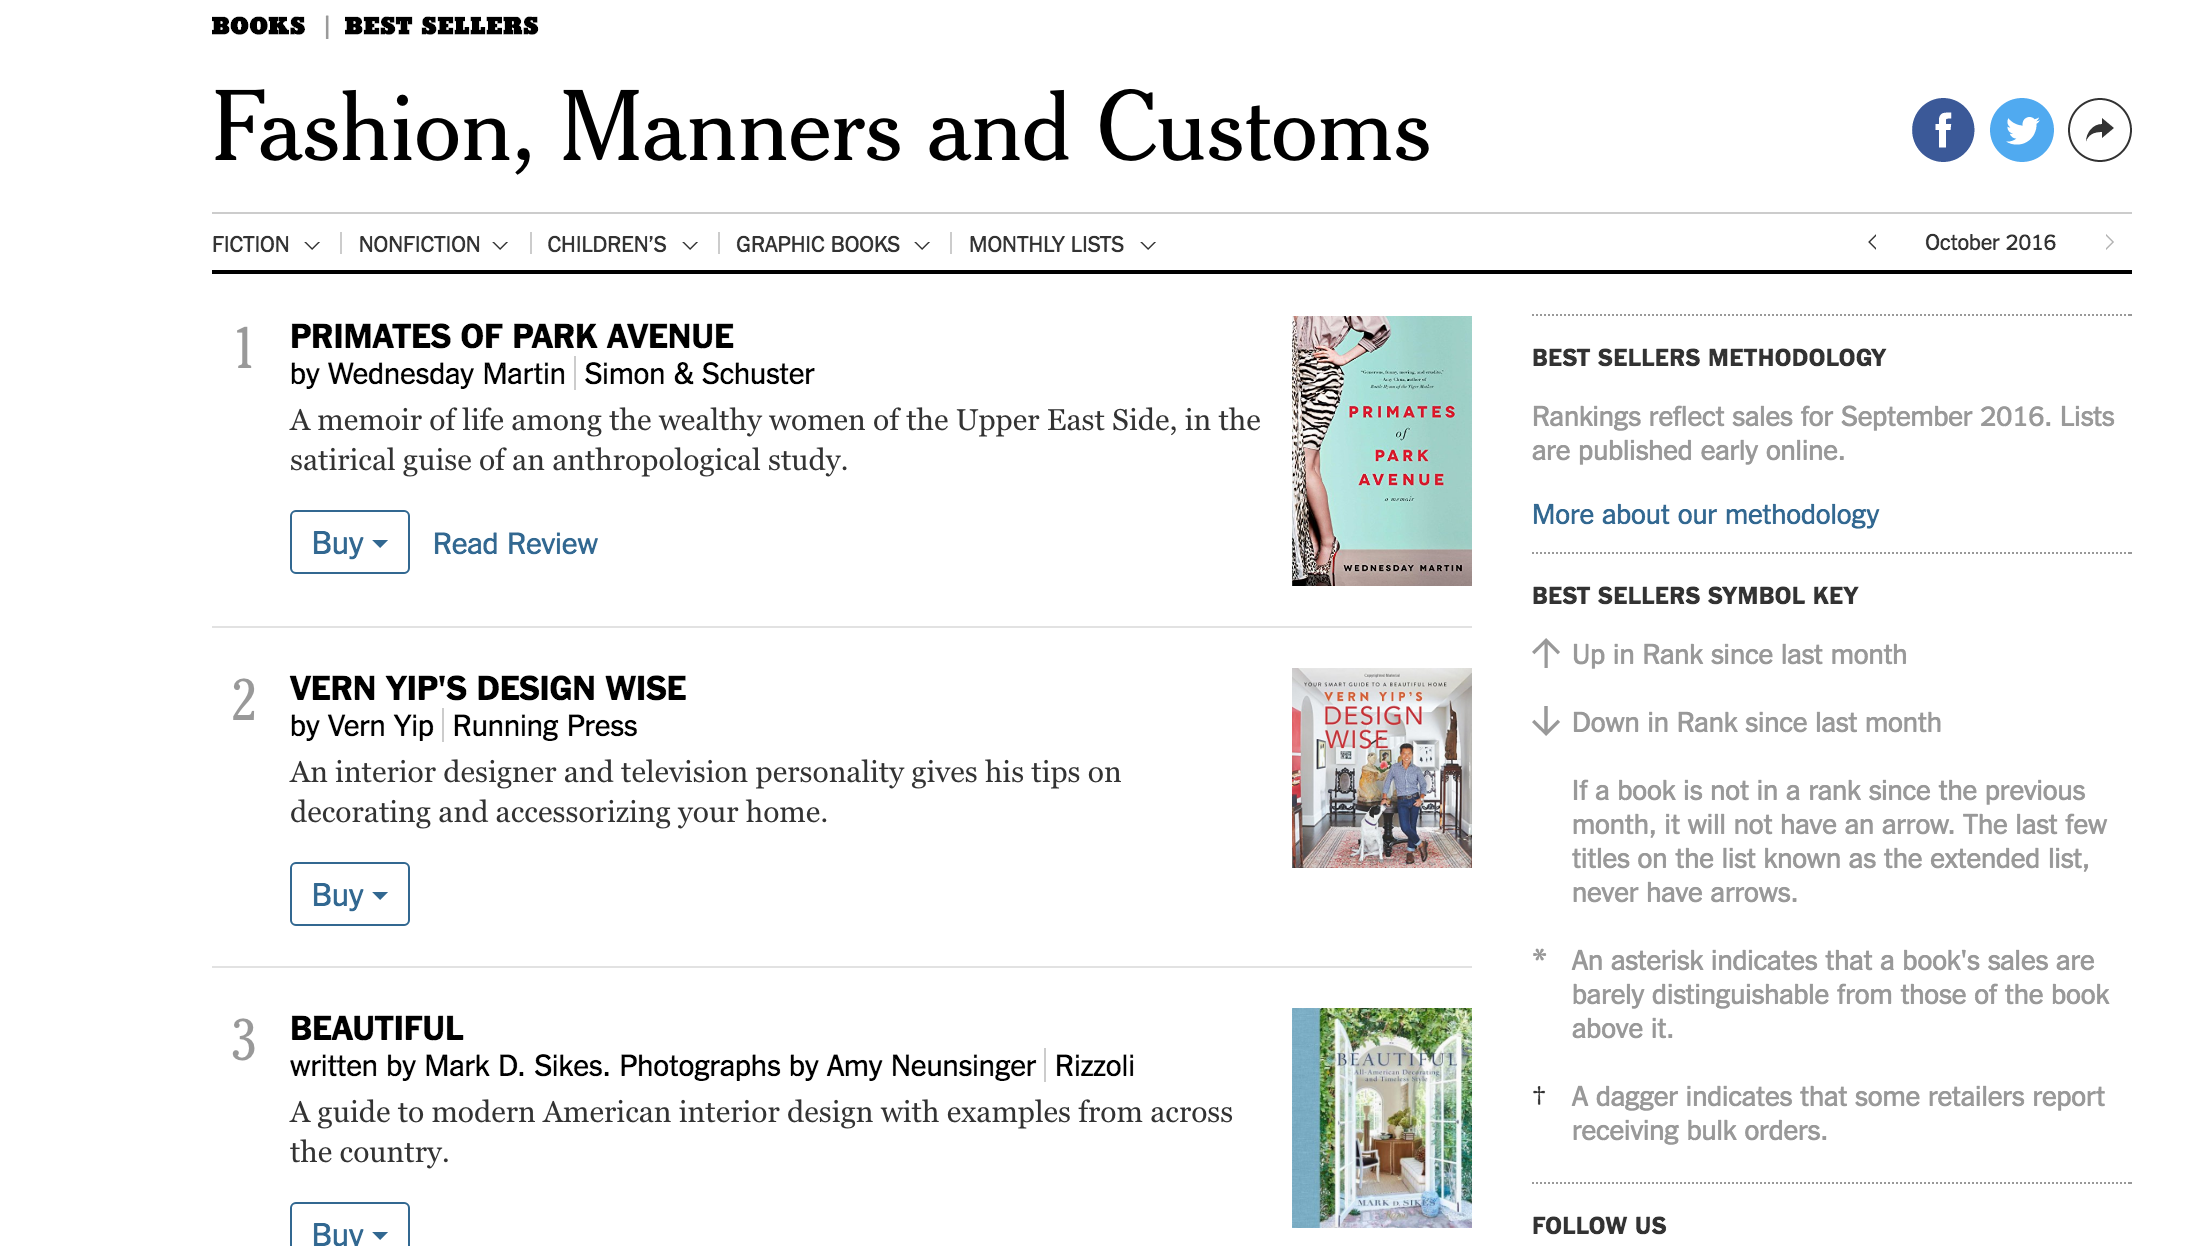 NYT Best Seller books, REDHEADS is number 5 in the Fashion Manners and Customs category.